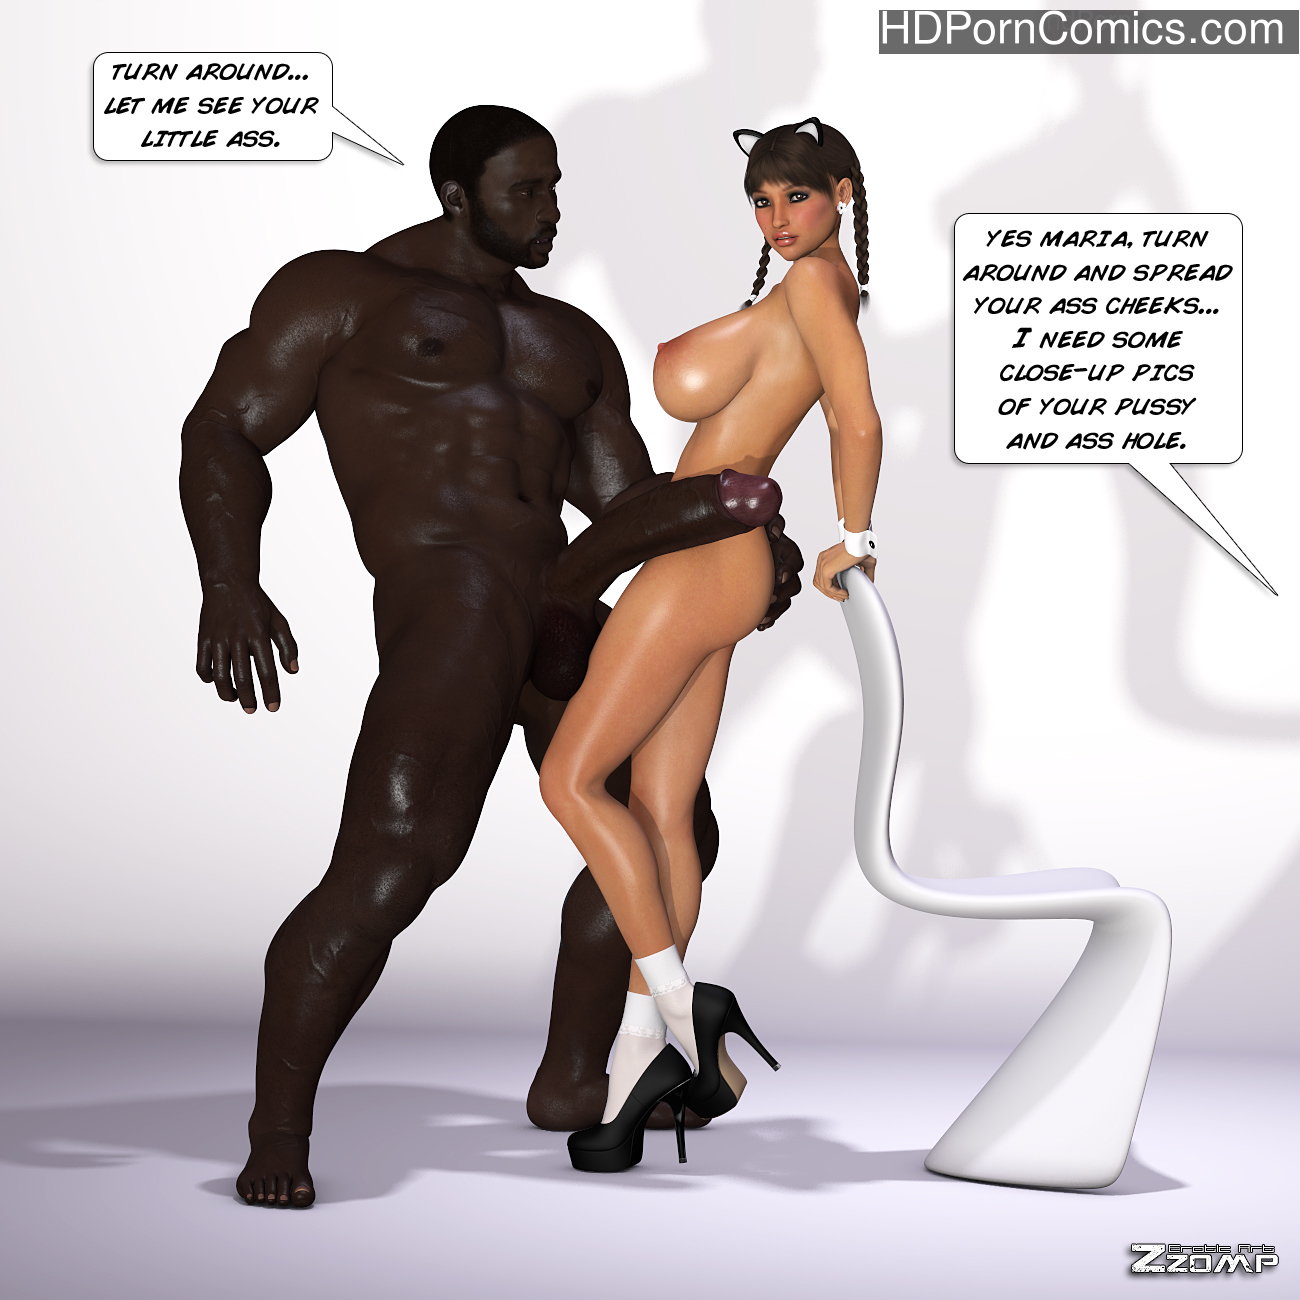 Zzomp – Maria First Interracial Scene21 free sex comic